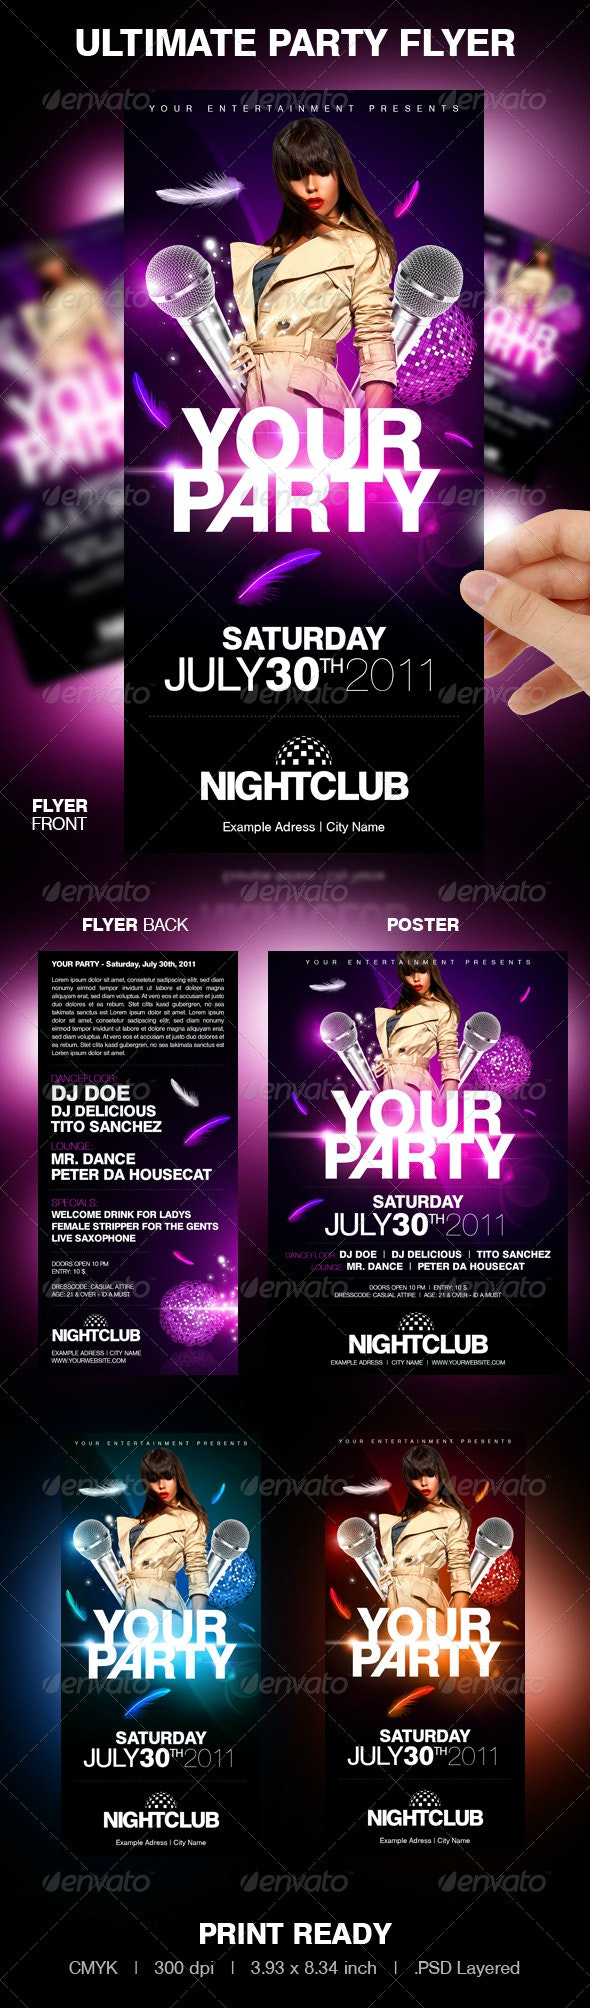 Ultimate Party Flyer - Clubs & Parties Events